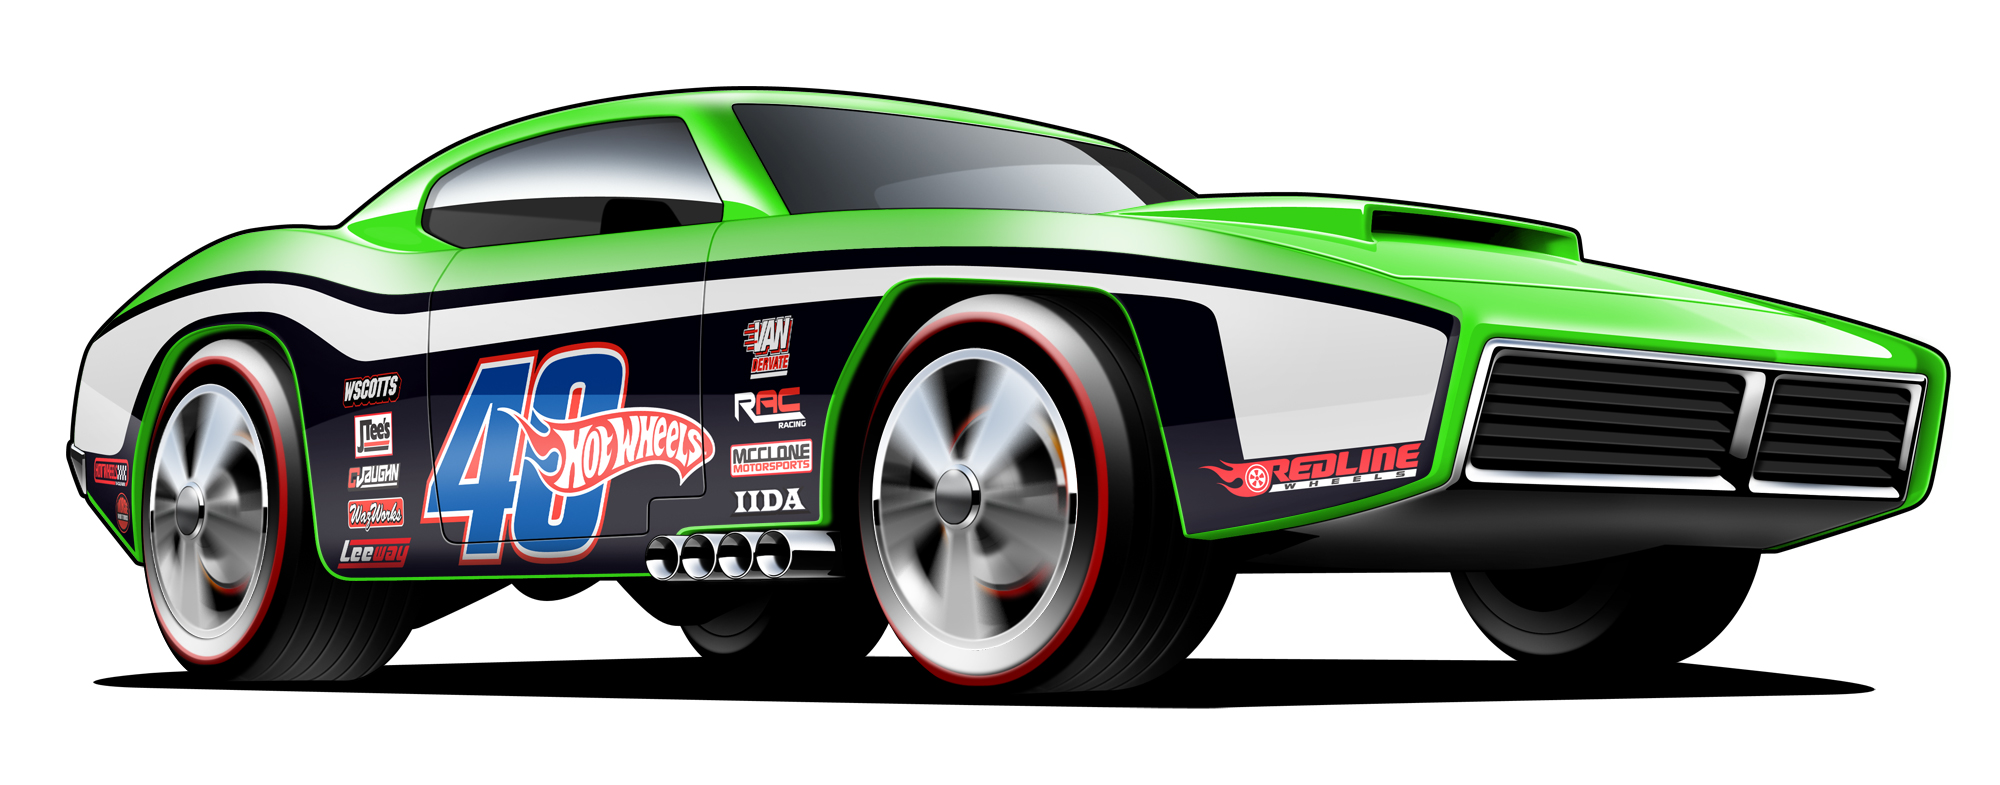 Hot Wheels Car Clipart Free 20 Free Cliparts Download